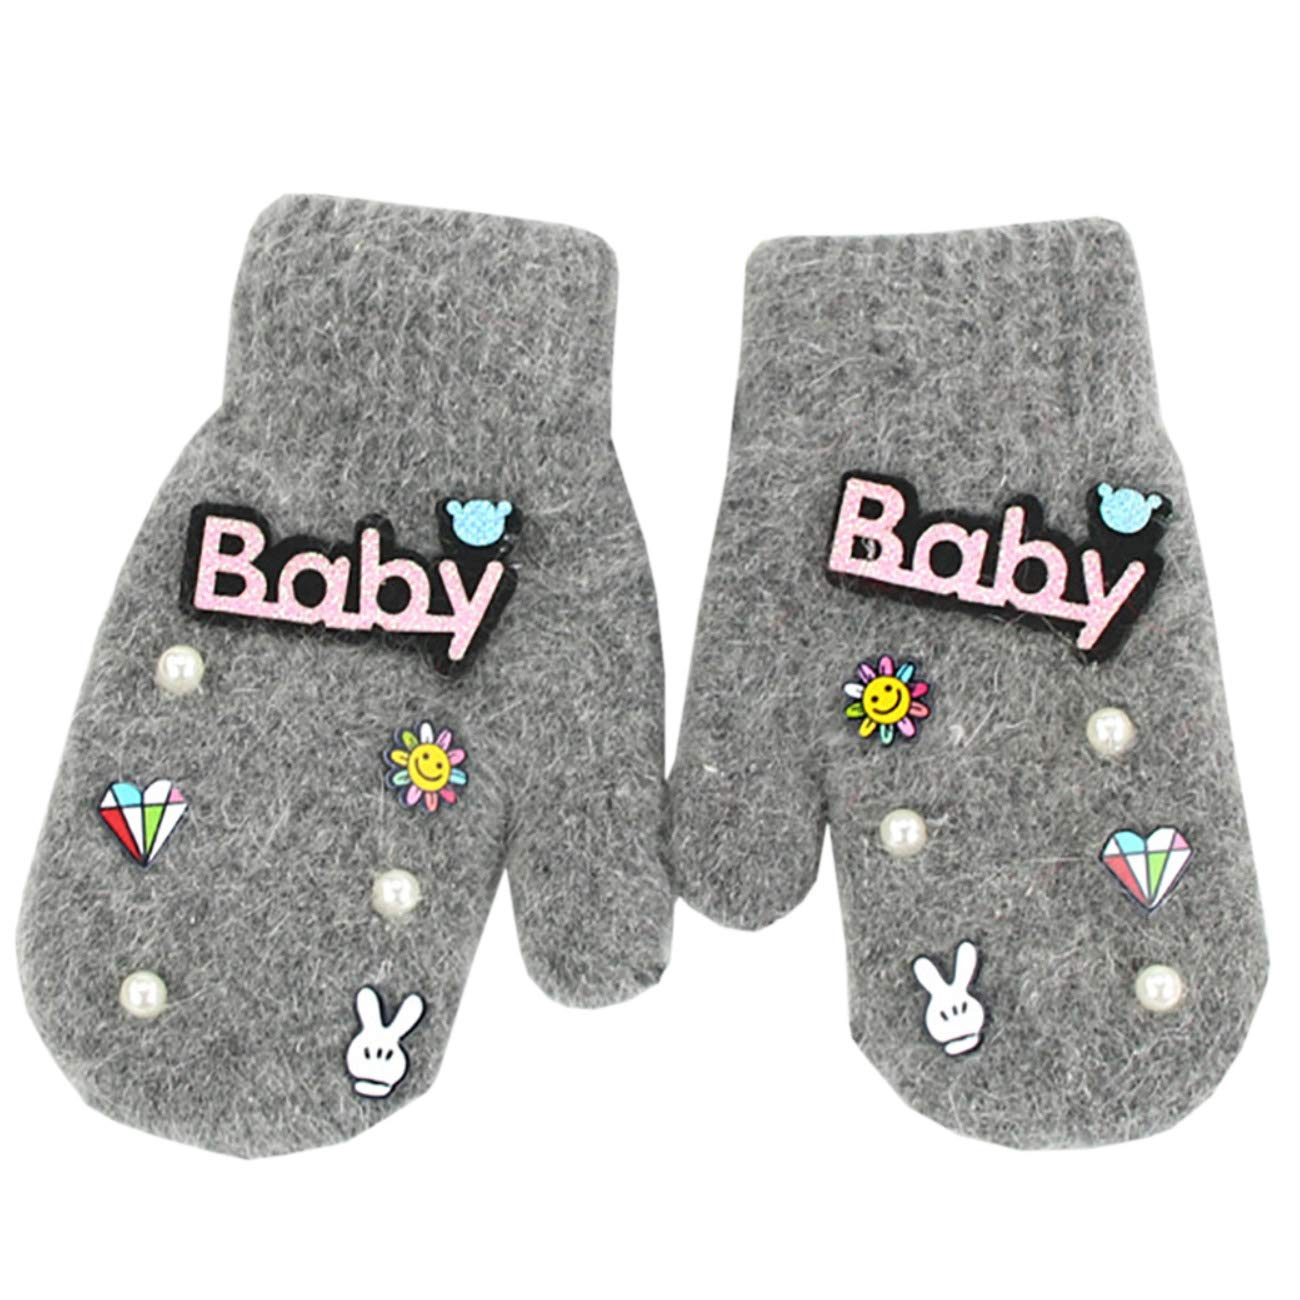 JMsDream Children Mittens New Winter Baby Pearl Warm Velvet Knitted Gloves with Wool Lined